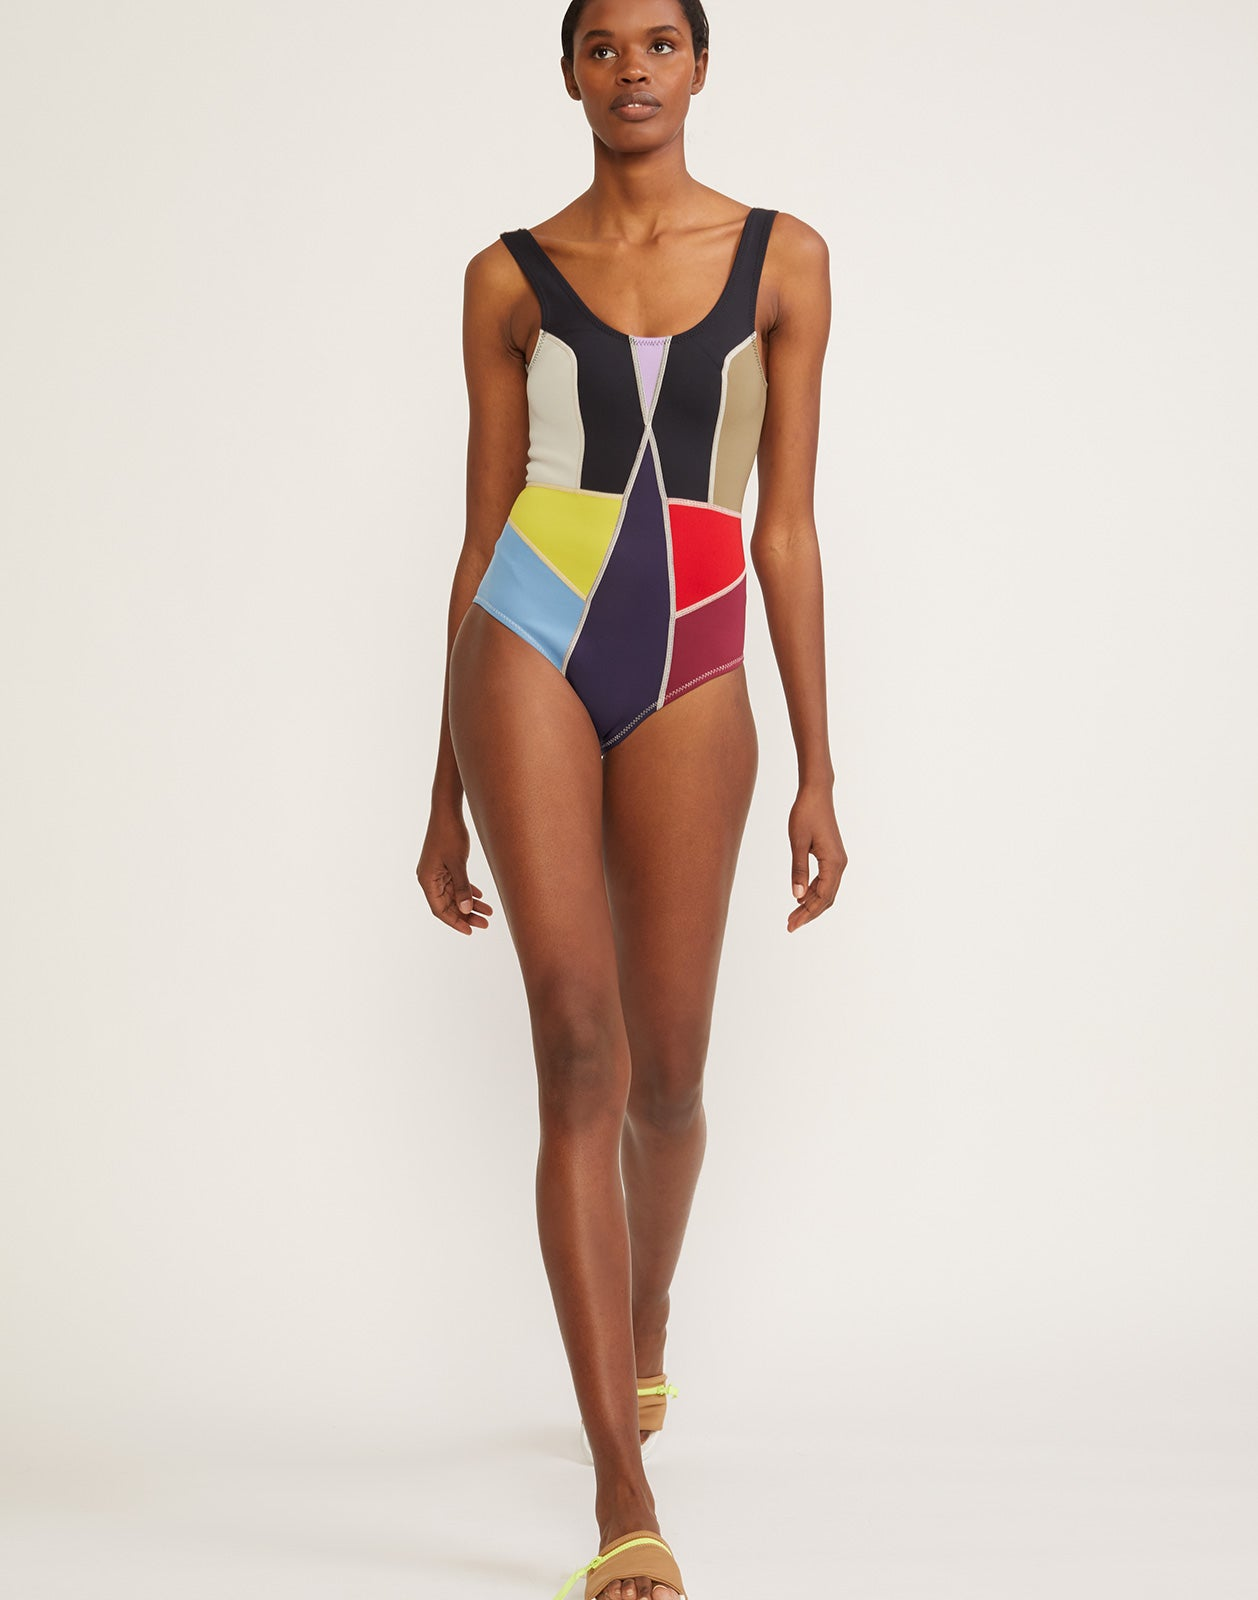 6ce59c523b Full front view of multi-color asymmetrical colorblock swimsuit.